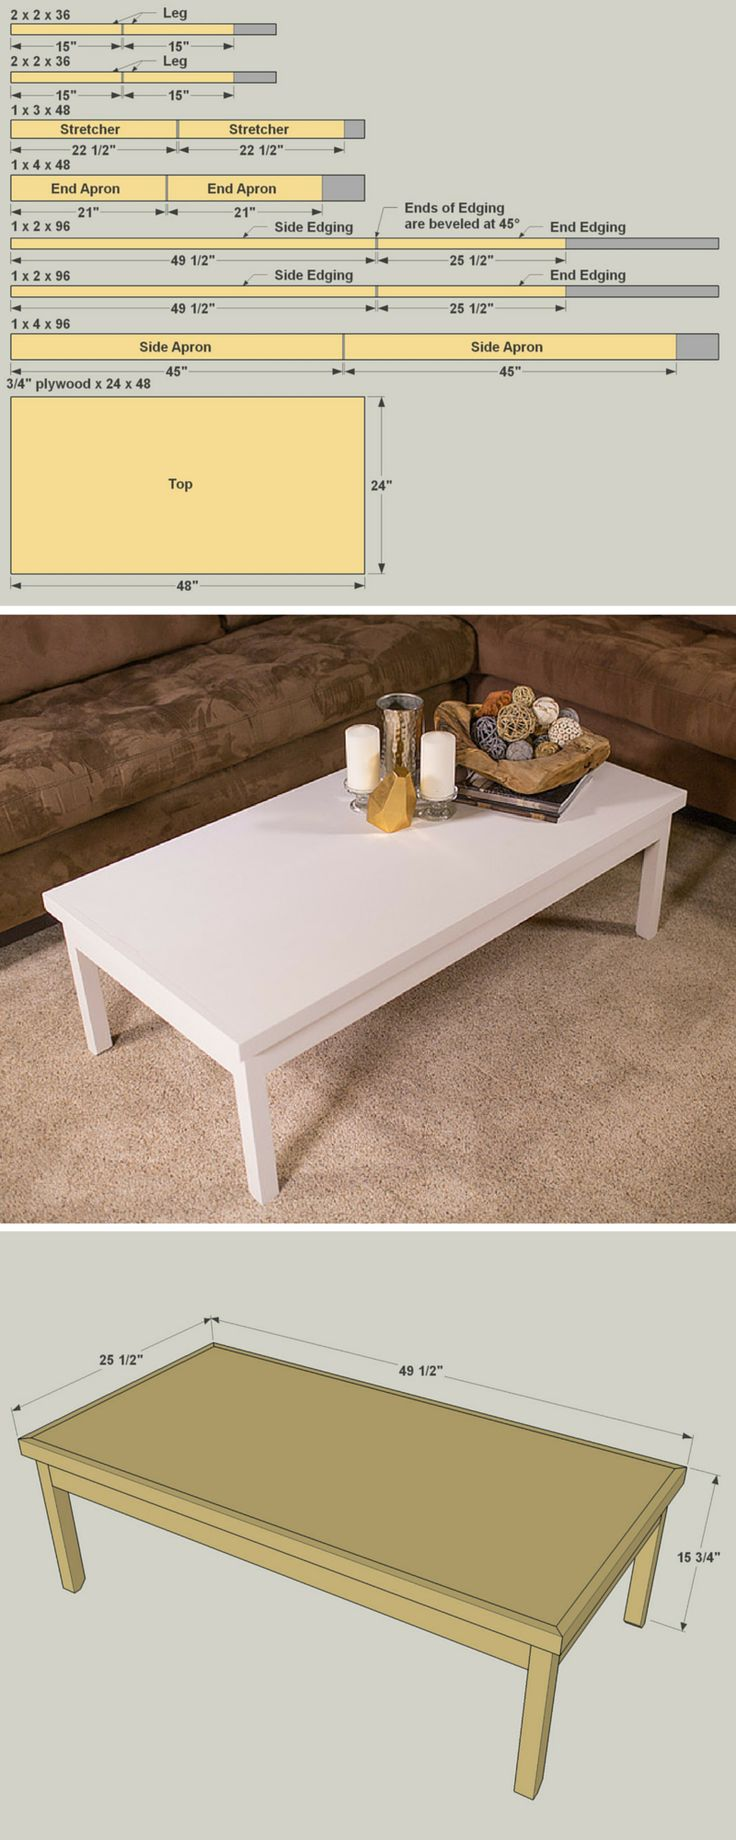 How to make a sofa table from 1 x 6 lumber - Even If You Ve Never Built Furniture Before You Can Create This Super Simple